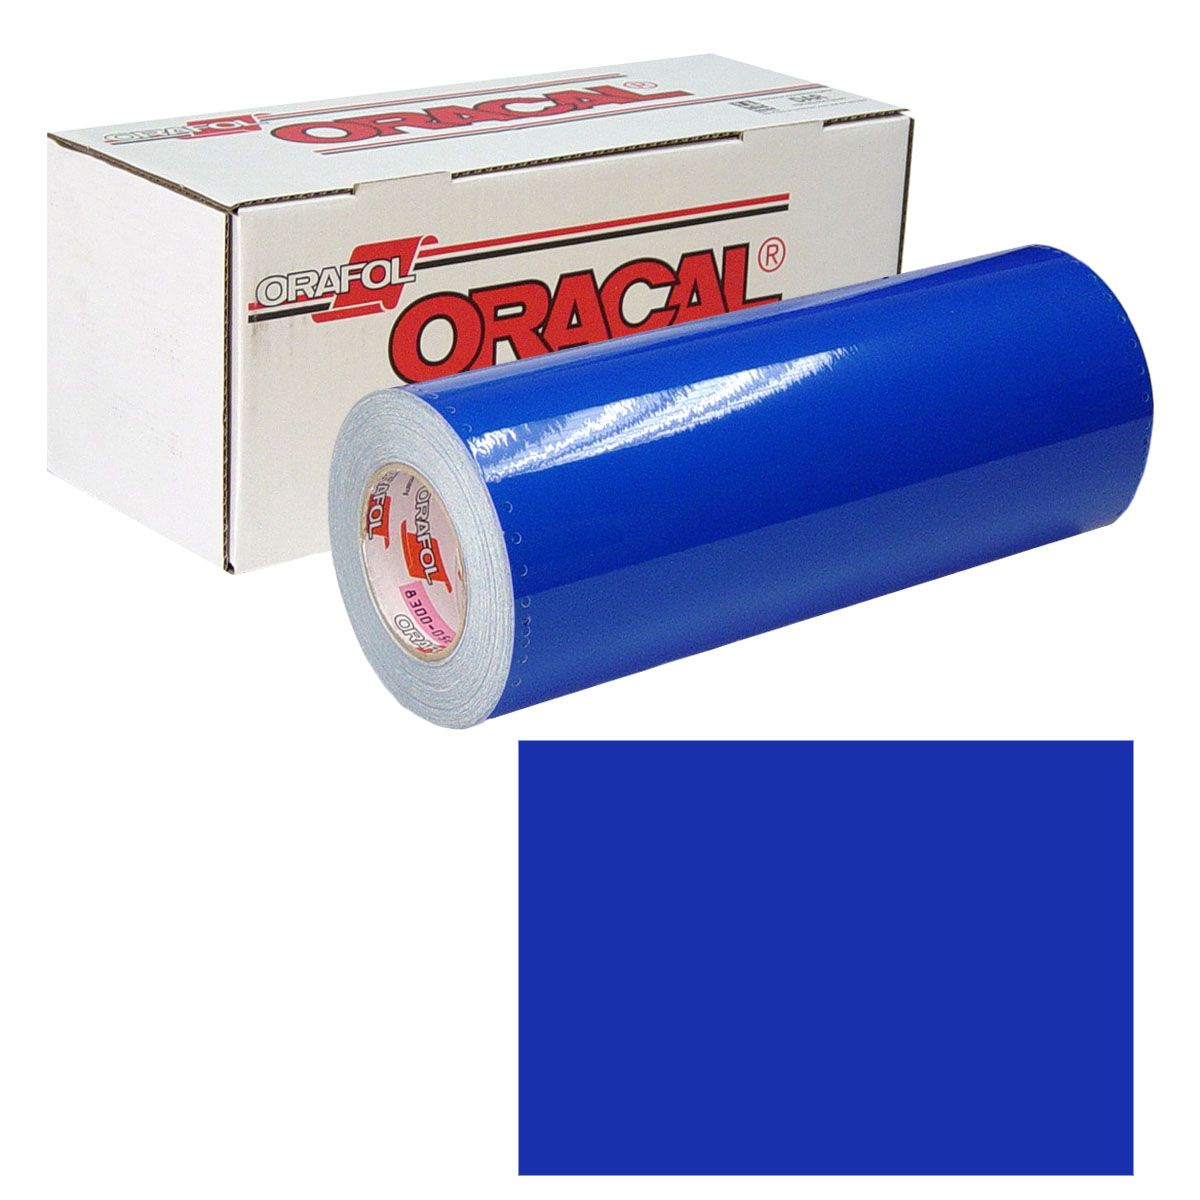 ORACAL 631 Unp 30in X 10yd 086 Brilliant Blue